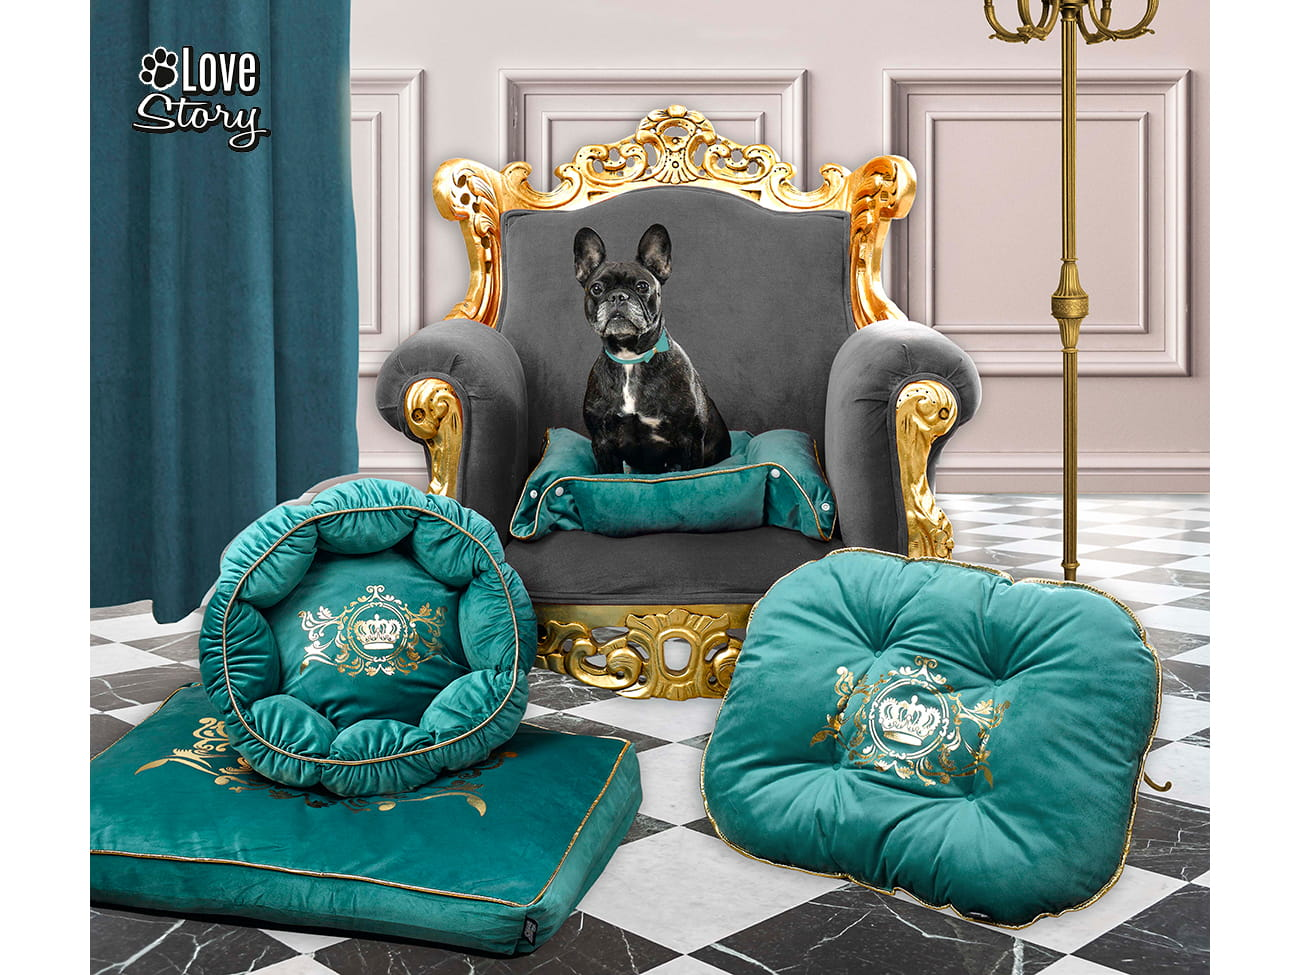 LEGOWISKO LOVE STORY - Luxurious 60x45 Emerald Green